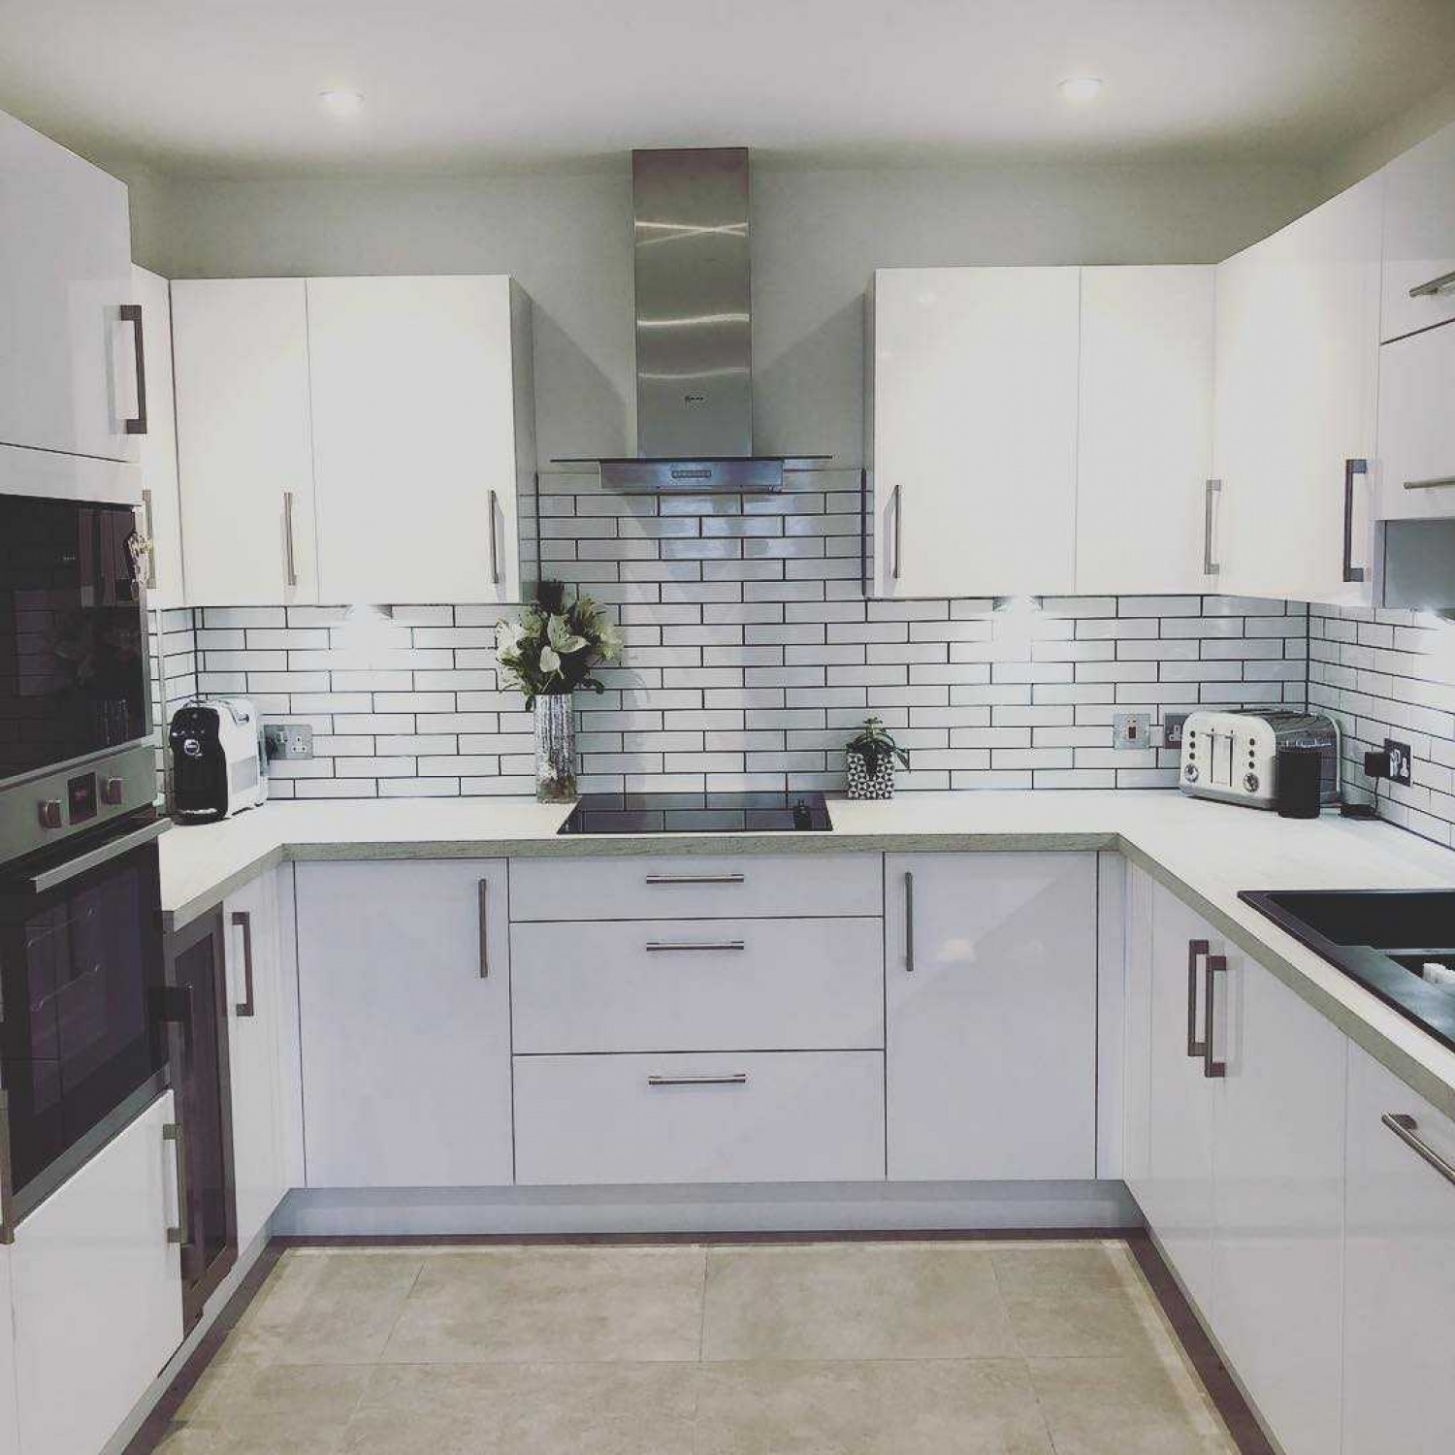 12 Must-have kitchen tile ideas to make you swoon!